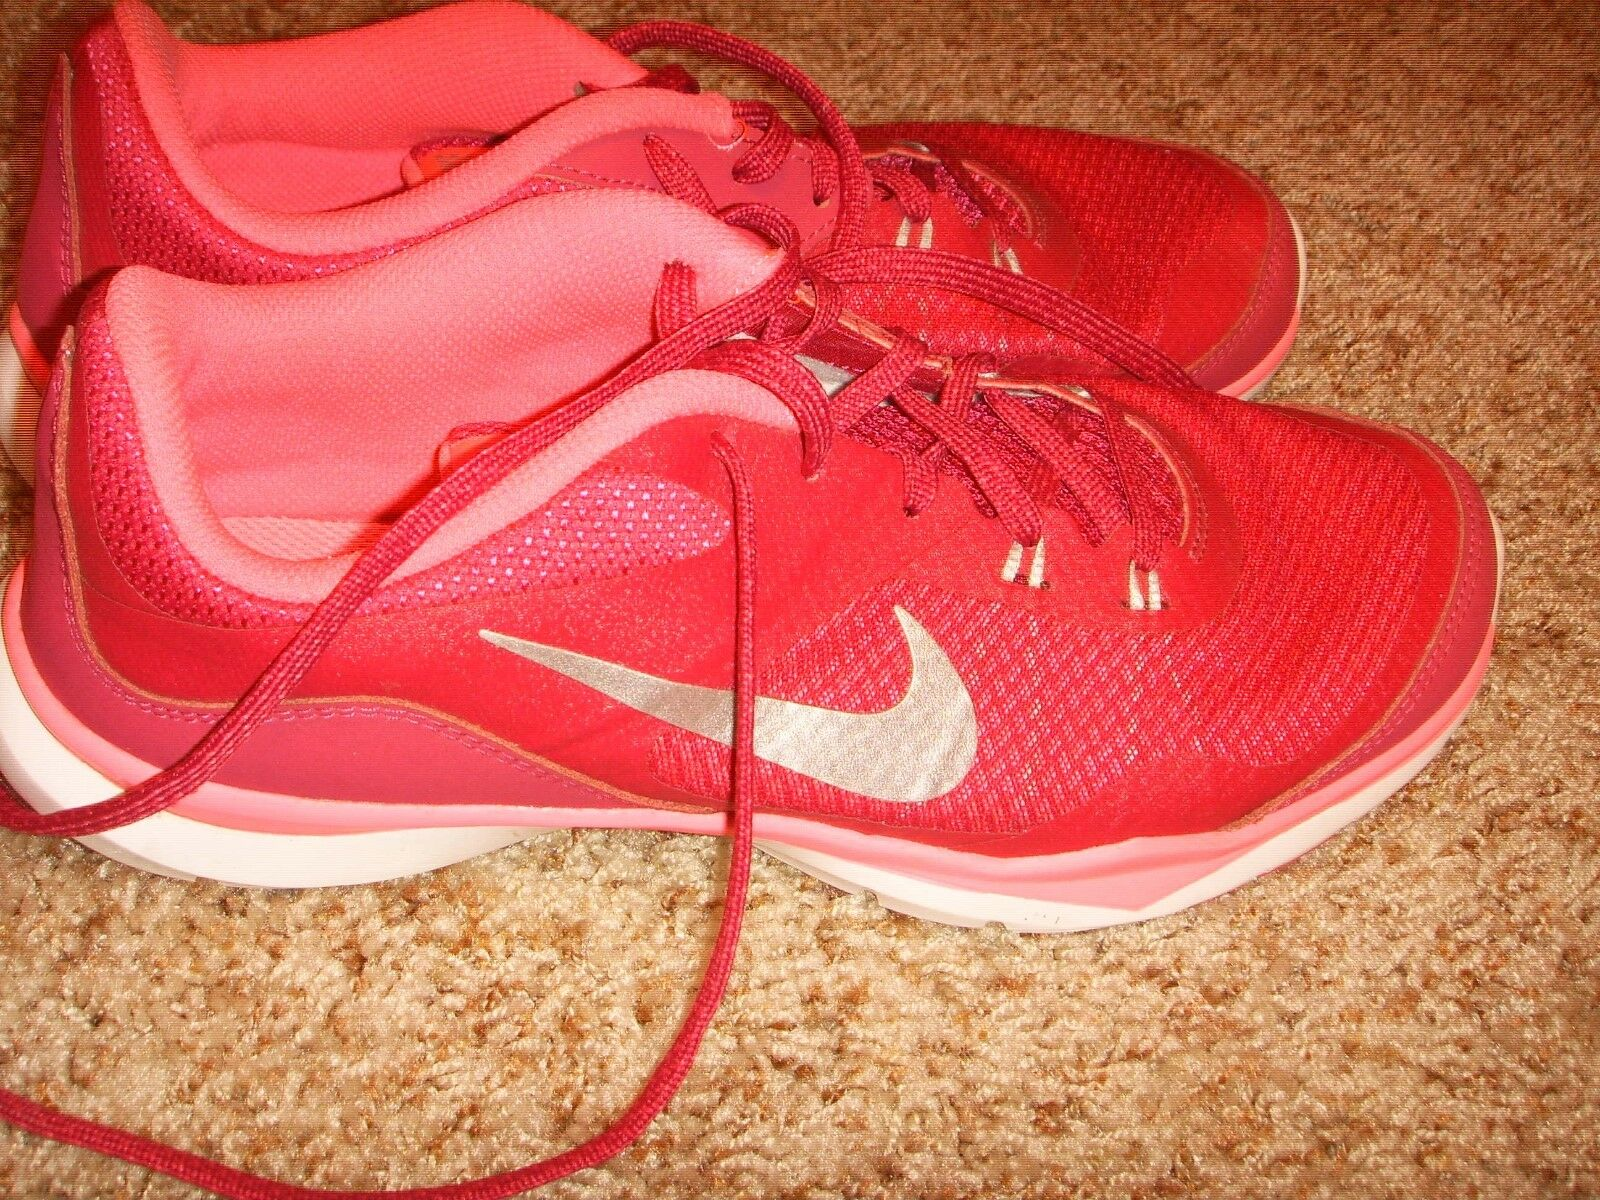 NIKE Flex TR5 Running Shoes 724858-603 Womens Comfortable Comfortable and good-looking